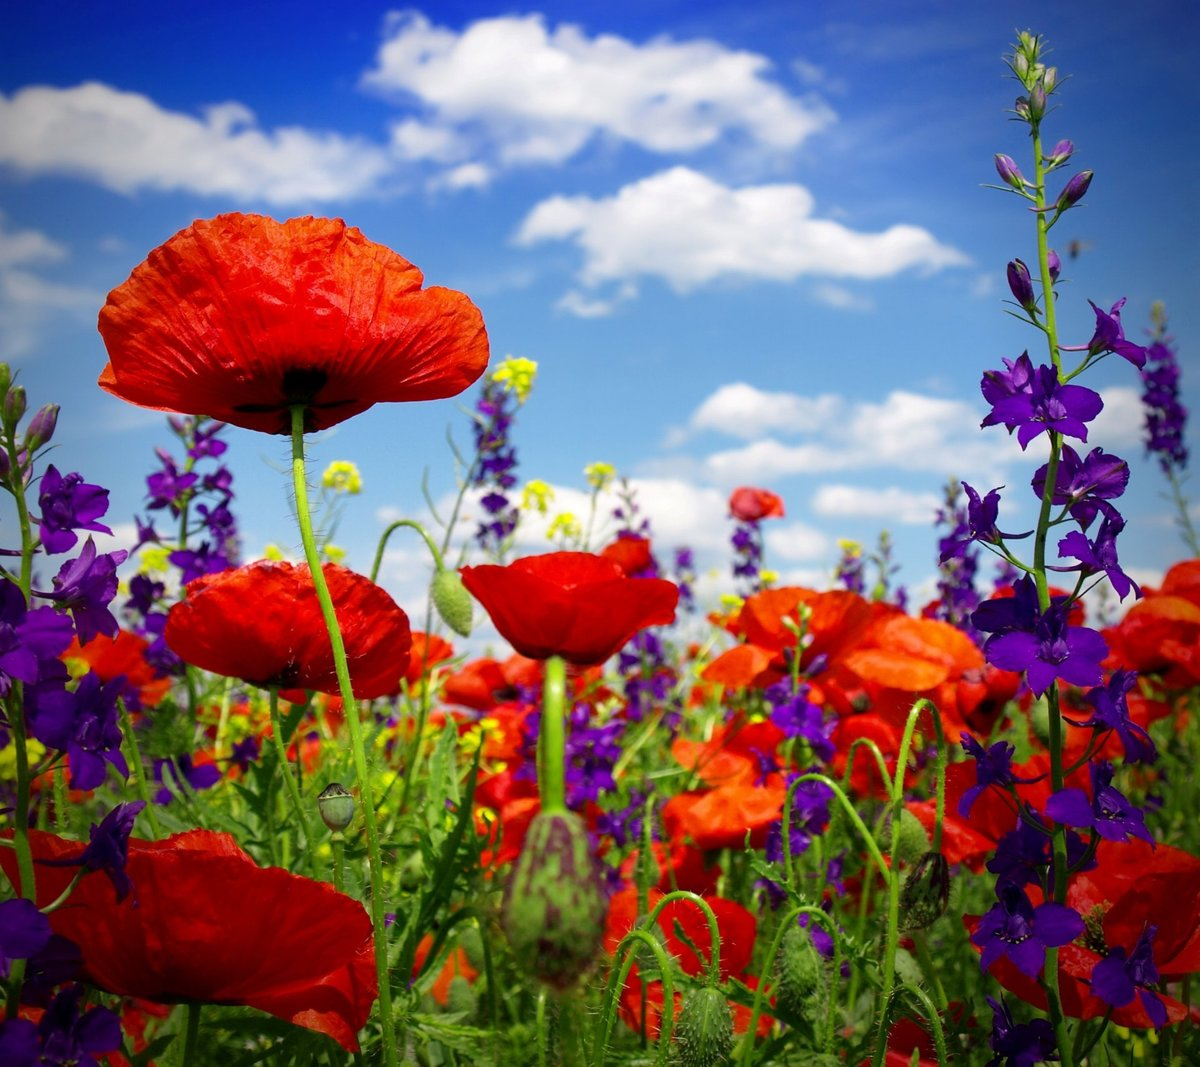 Poppy Field Wild Flowers Poppy Field Poppies Flower Summer Bloom